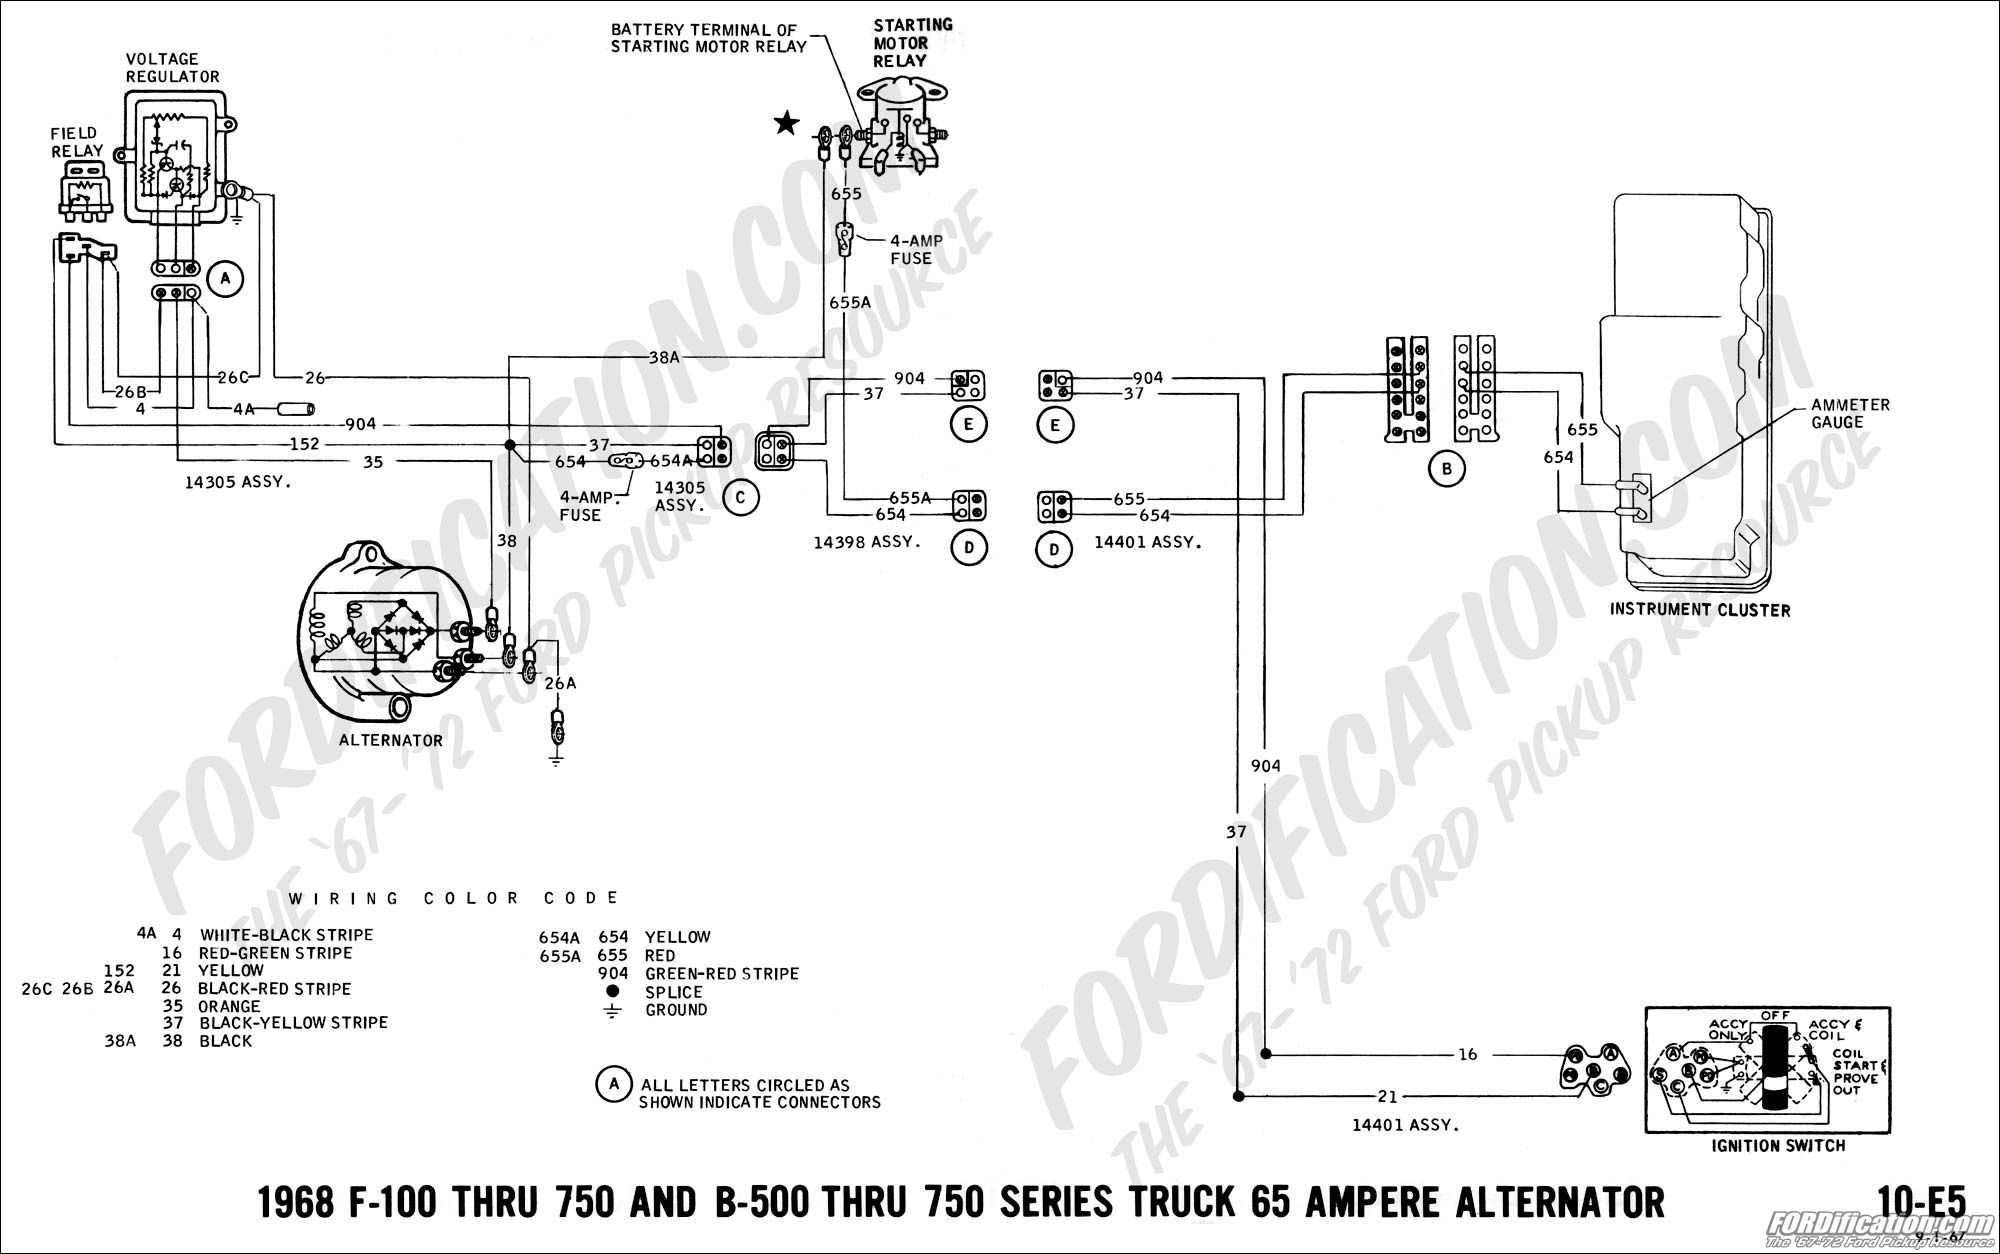 ford alternator wiring with gauge dia wiring diagram all data Ford Alternator Regulator Wiring 1971 ford alternator wiring wiring diagram all data 3 wire ford alternator wiring 68 ford alternator